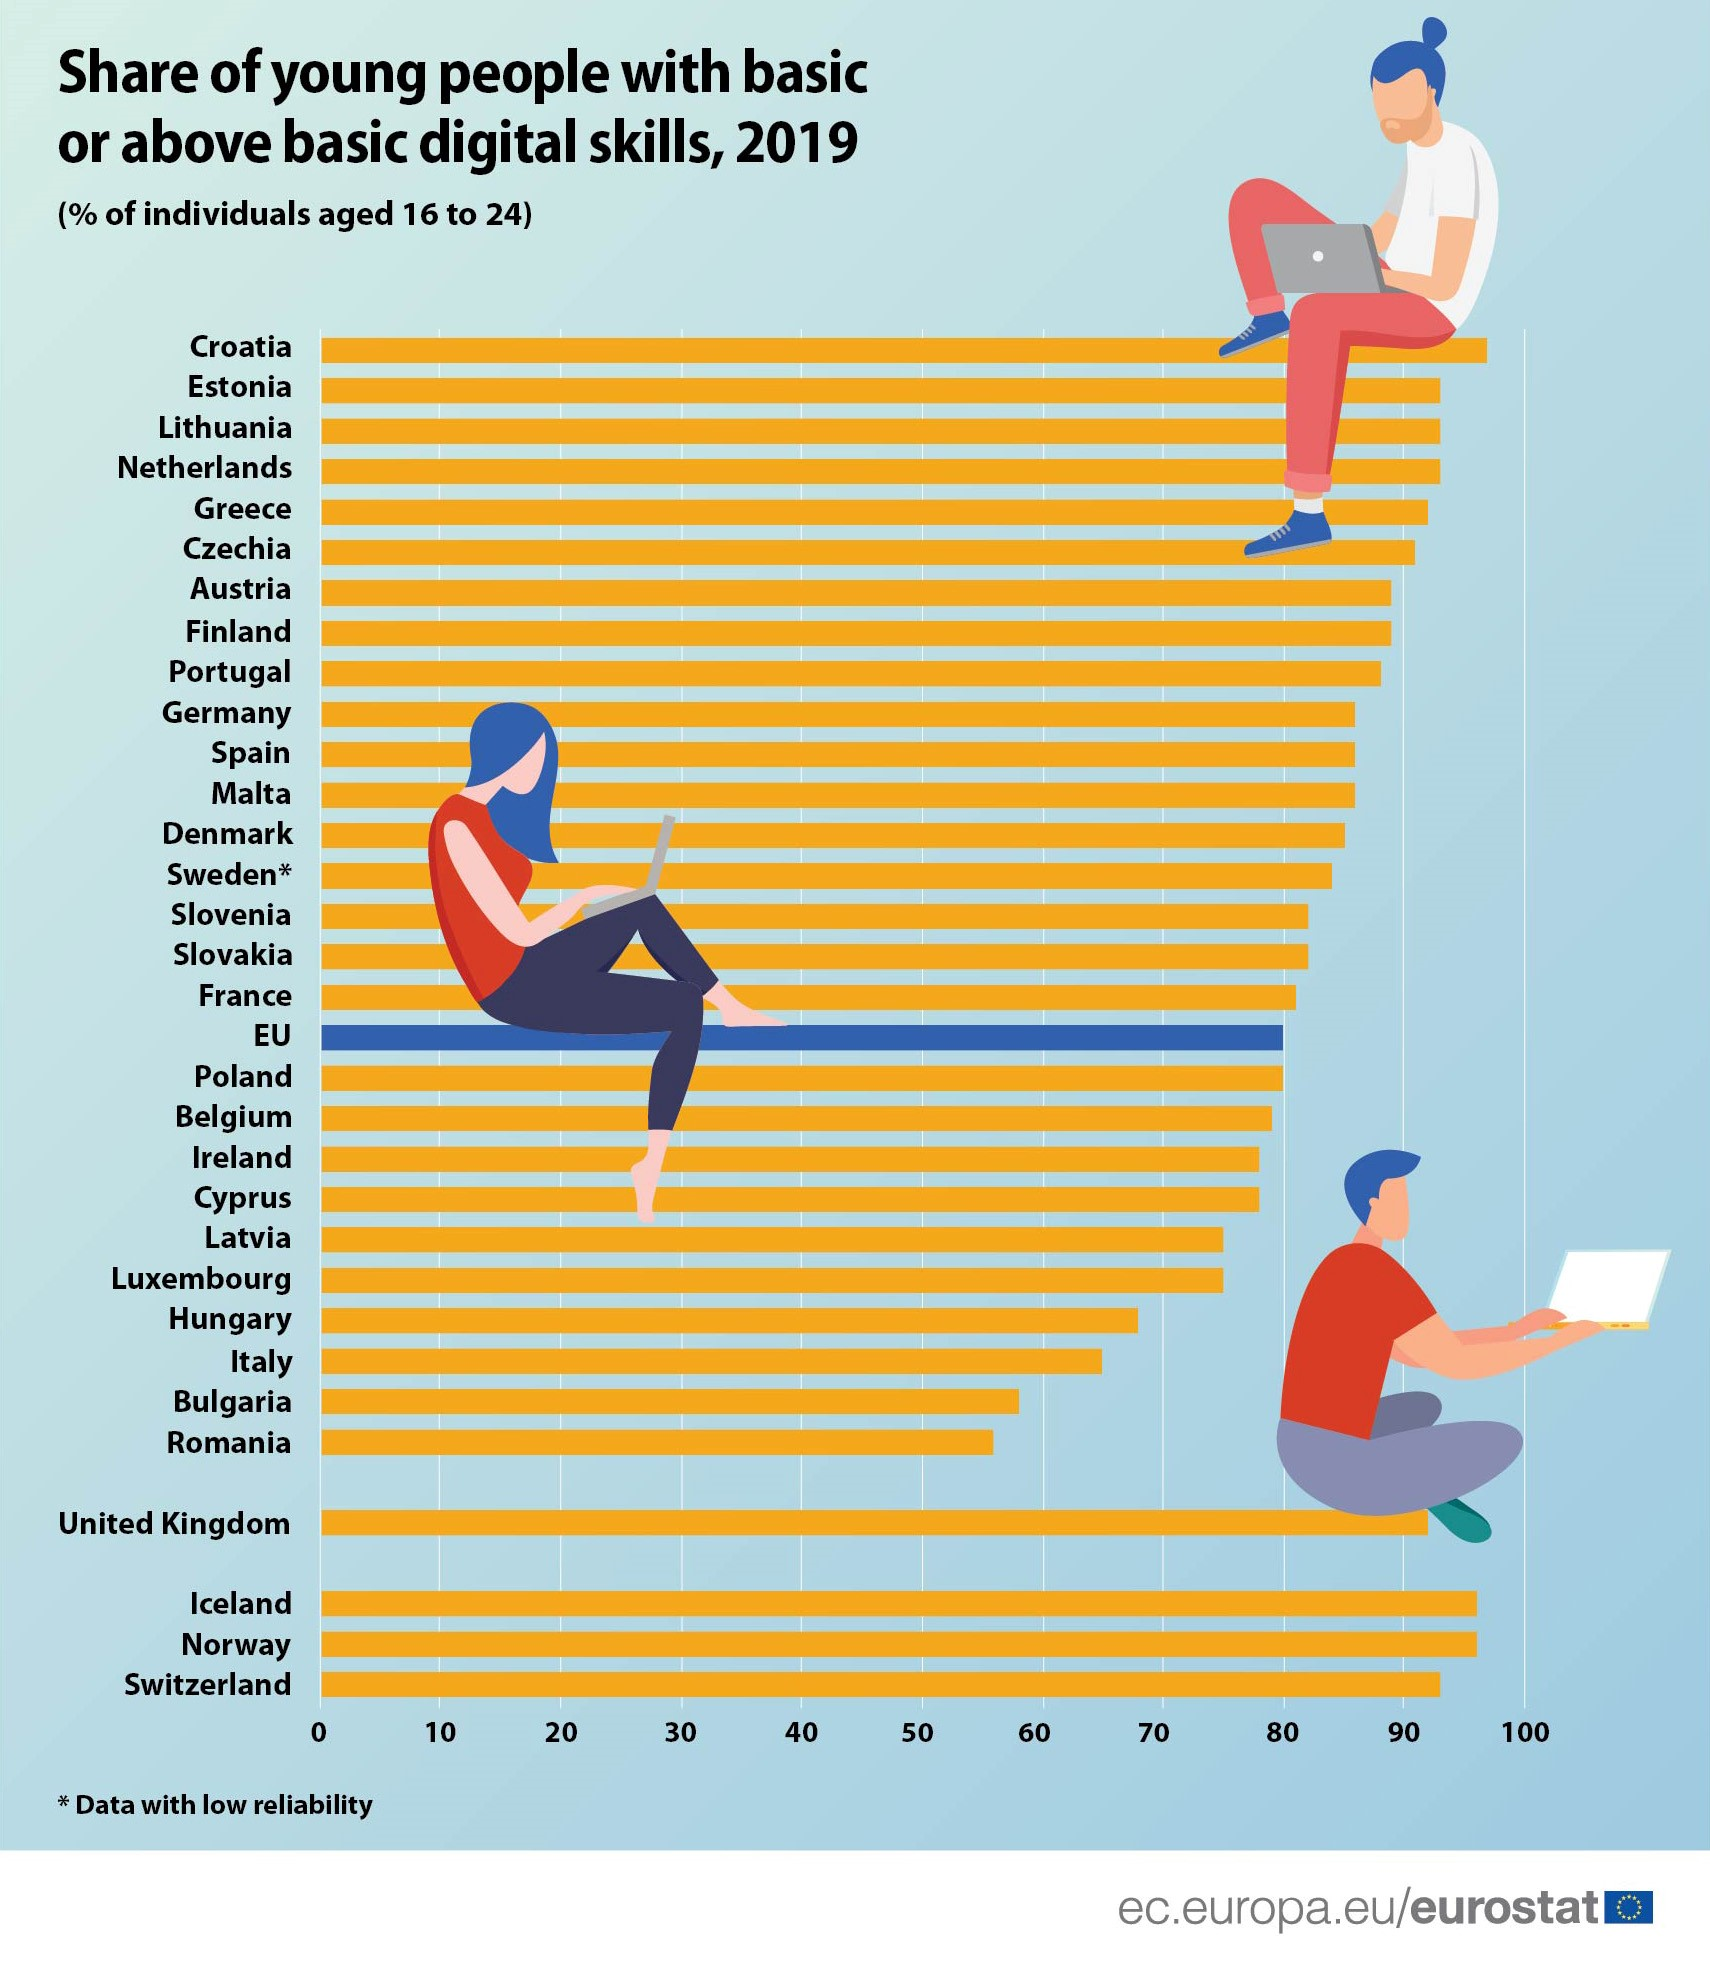 Digital skills of young people in the EU